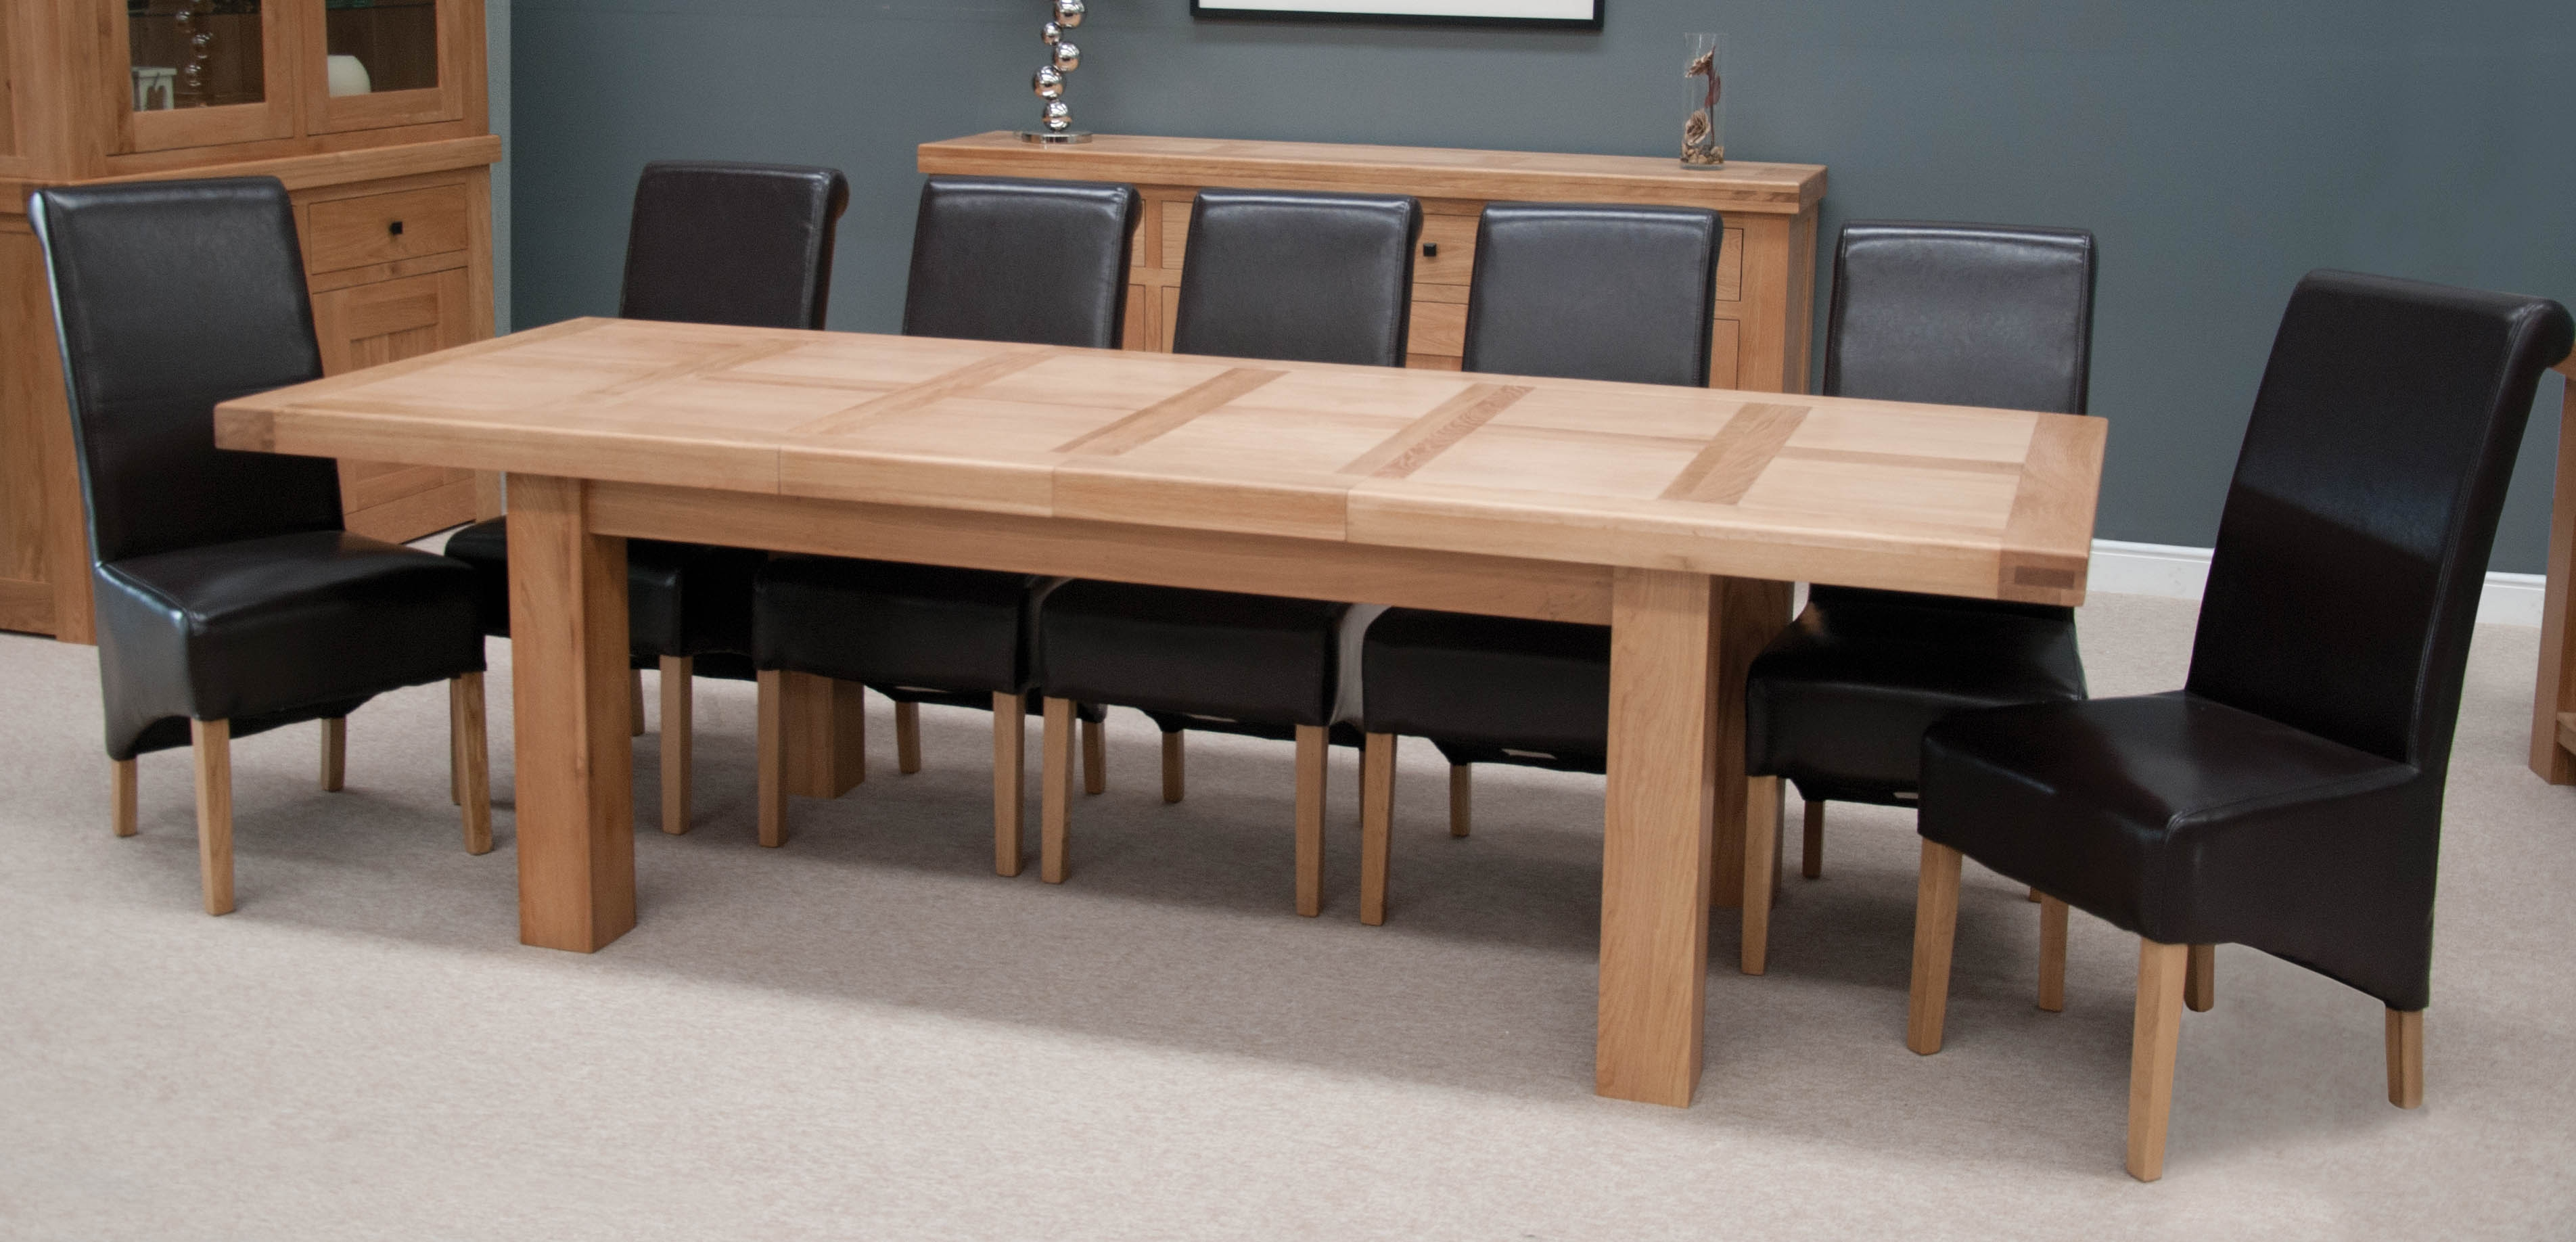 Homestyle GB Bordeaux Oak Twin Panel Dining Set - 220cm-320cm Grand Rectangular Extending with 8 Richmond Black Chairs